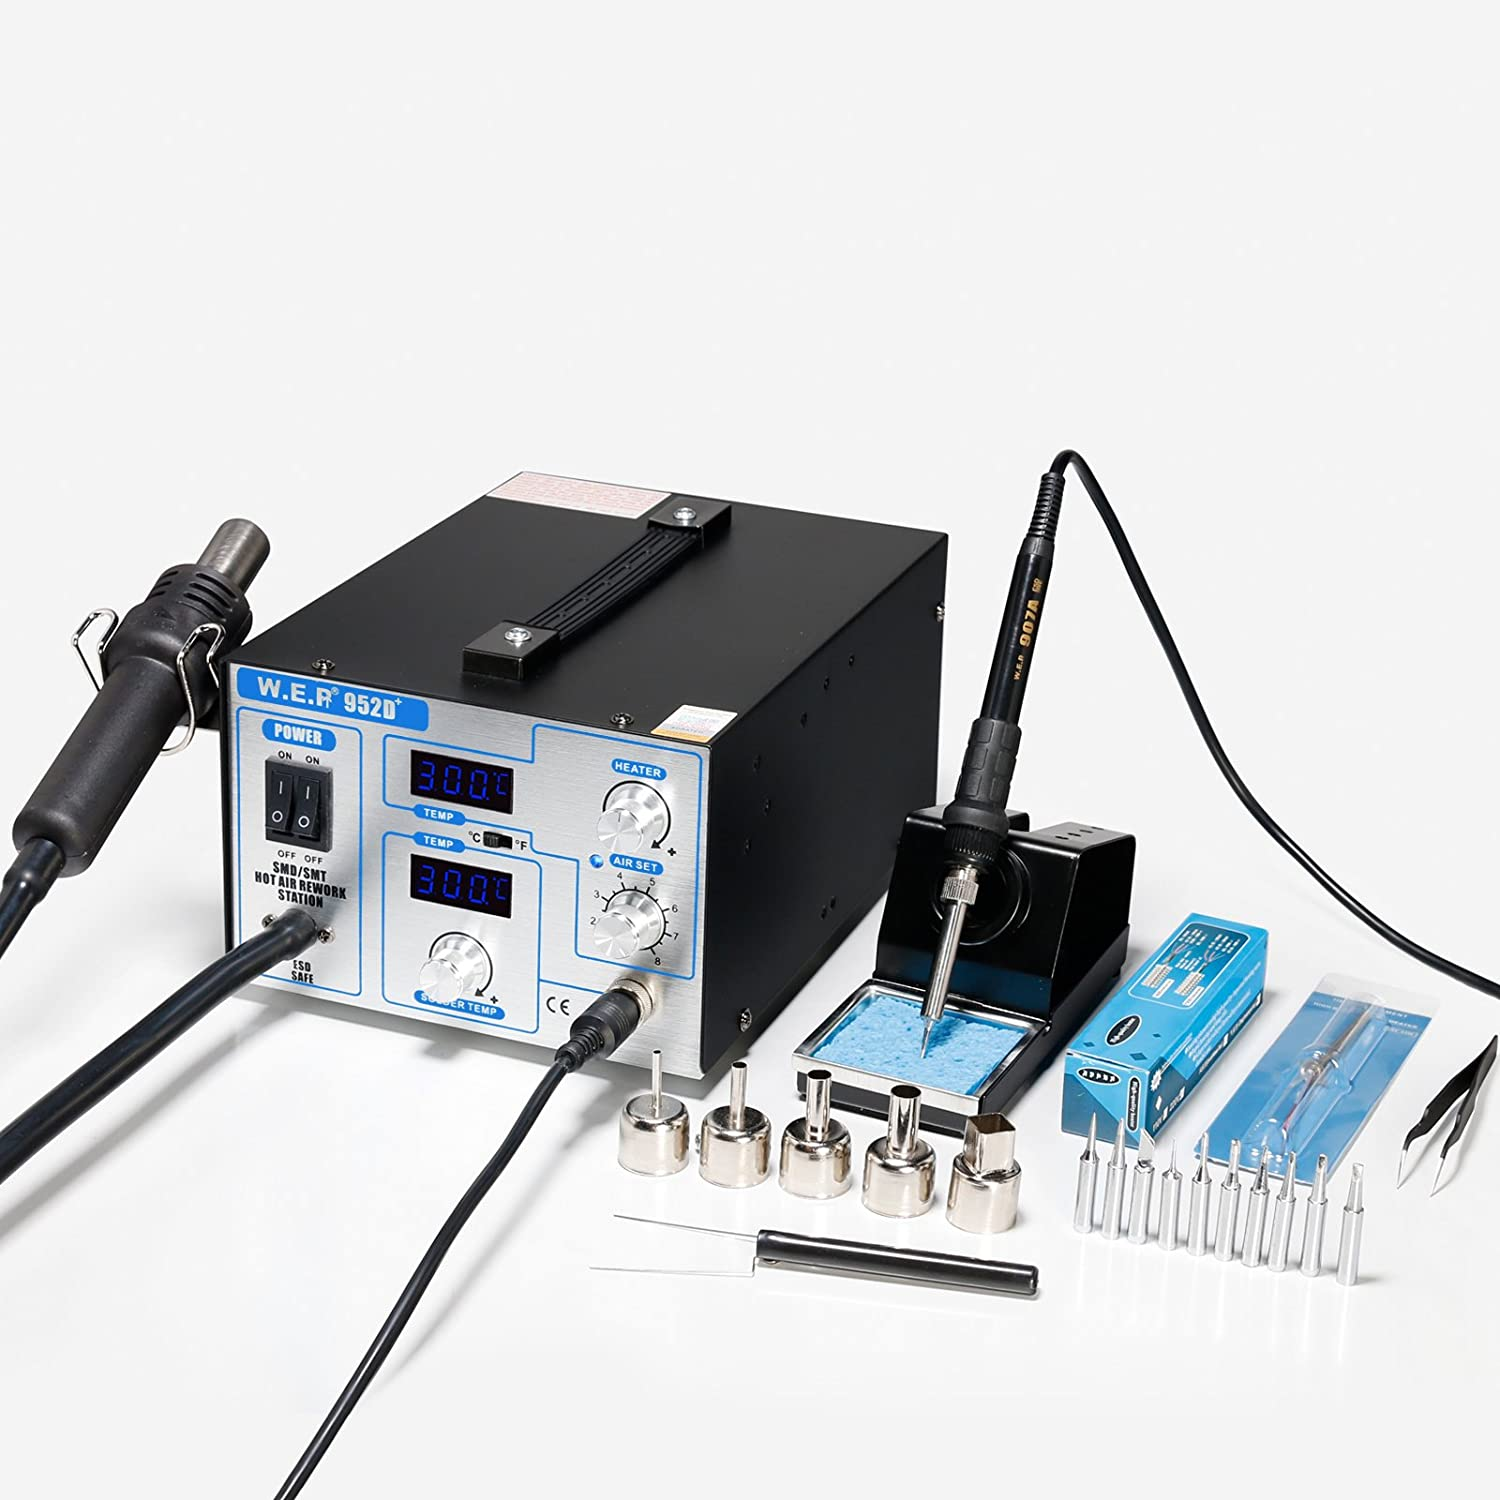 WEP-952D+ SMD ESD SAFE 2 IN 1 HOT AIR REWORK SOLDERING IRON STATION NEW UK Yihua